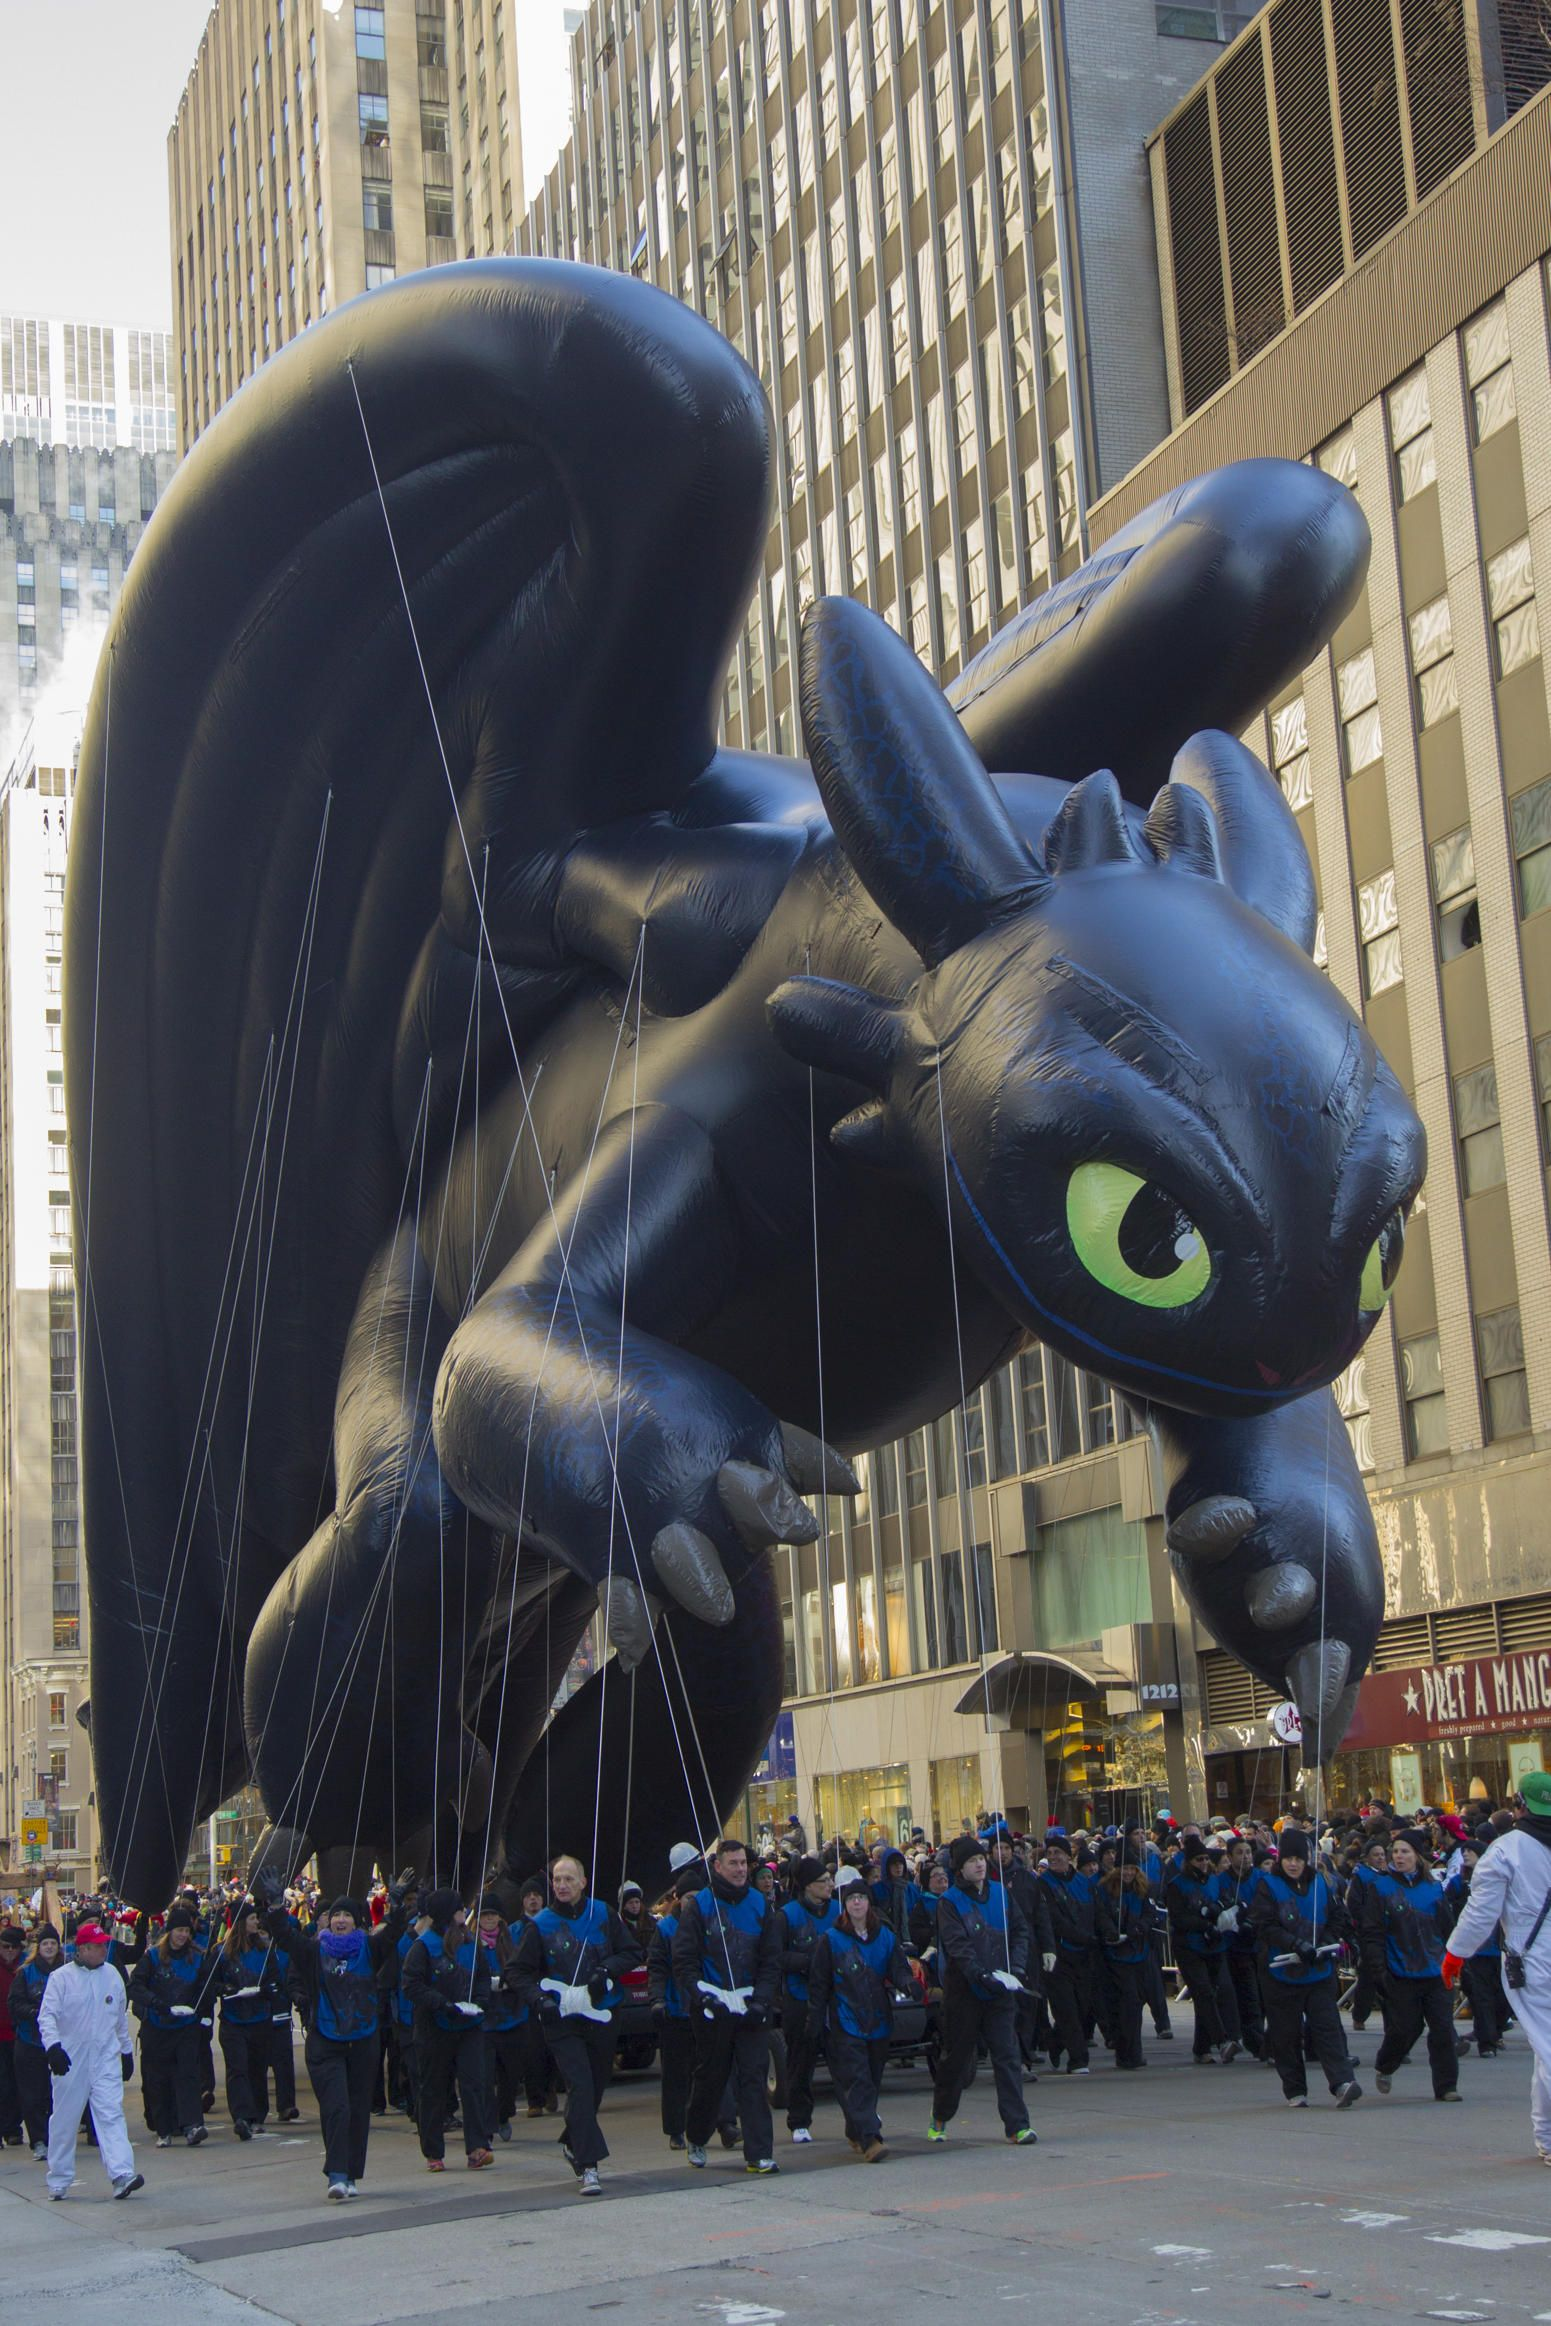 Toothless From How To Train Your Dragon Should Be Making Another Appearance At The Macy S How Train Your Dragon How To Train Dragon How To Train Your Dragon